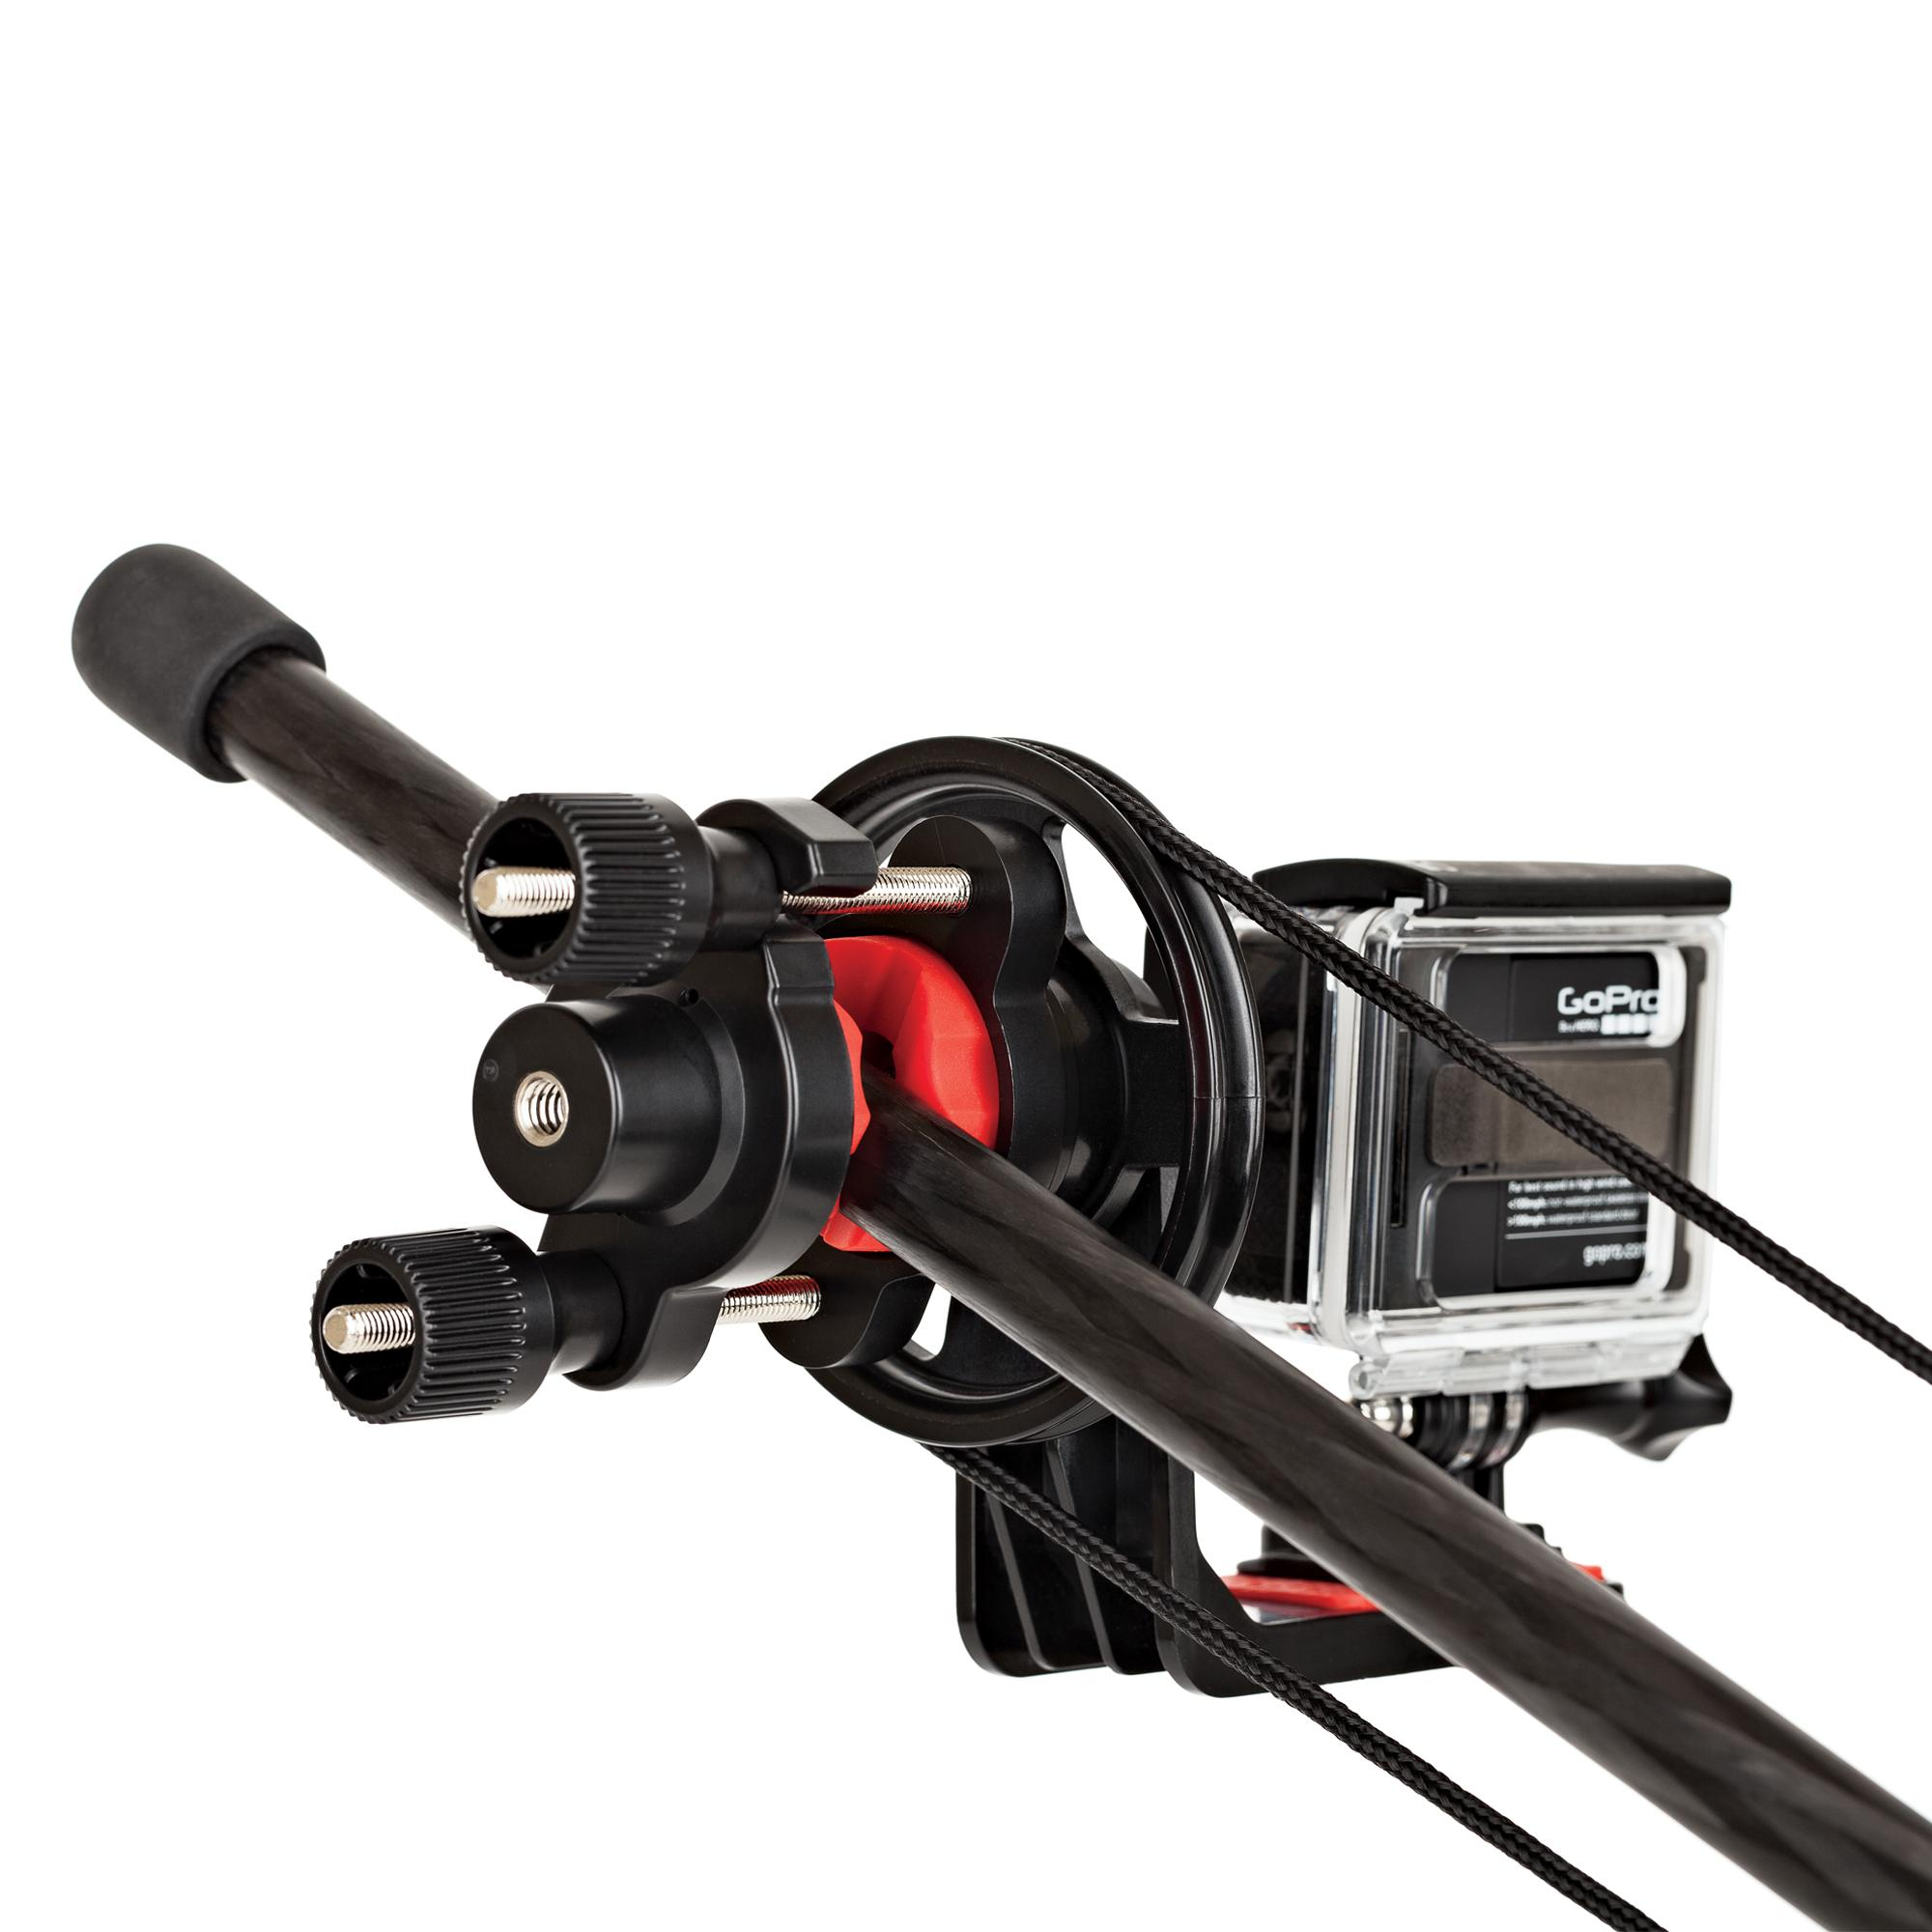 Jib Crane Gopro : Joby action jib kit with pole pack capture